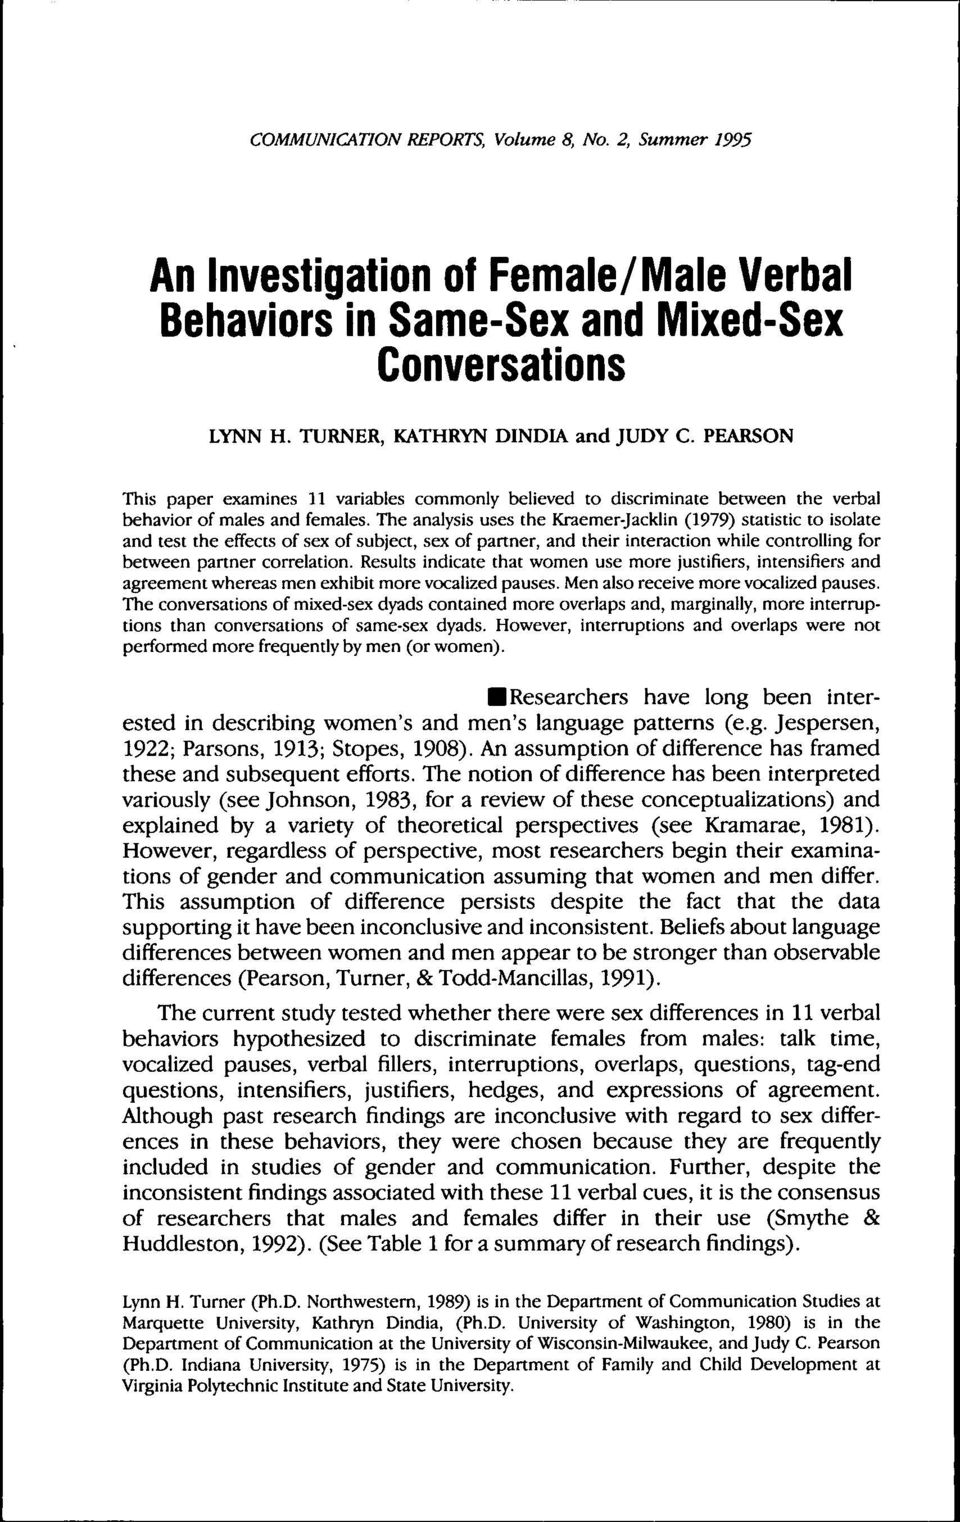 The analysis uses the Kraemer-Jacklin (1979) statistic to isolate and test the effects of sex of subject, sex of partner, and their interaction while controlling for between partner correlation.